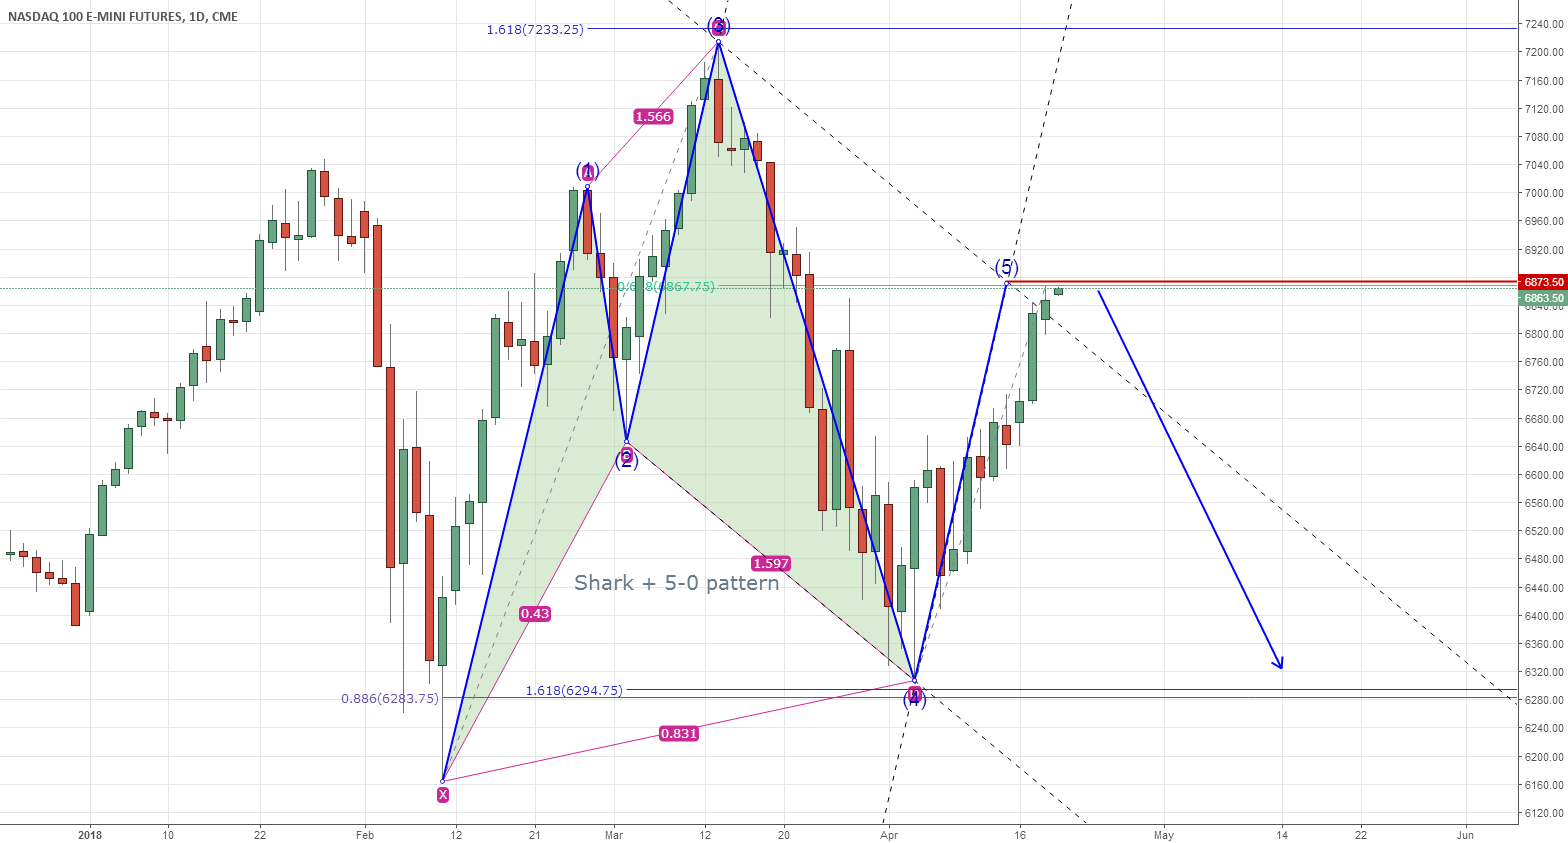 NASDAQ : bearish 5-0 pattern complete